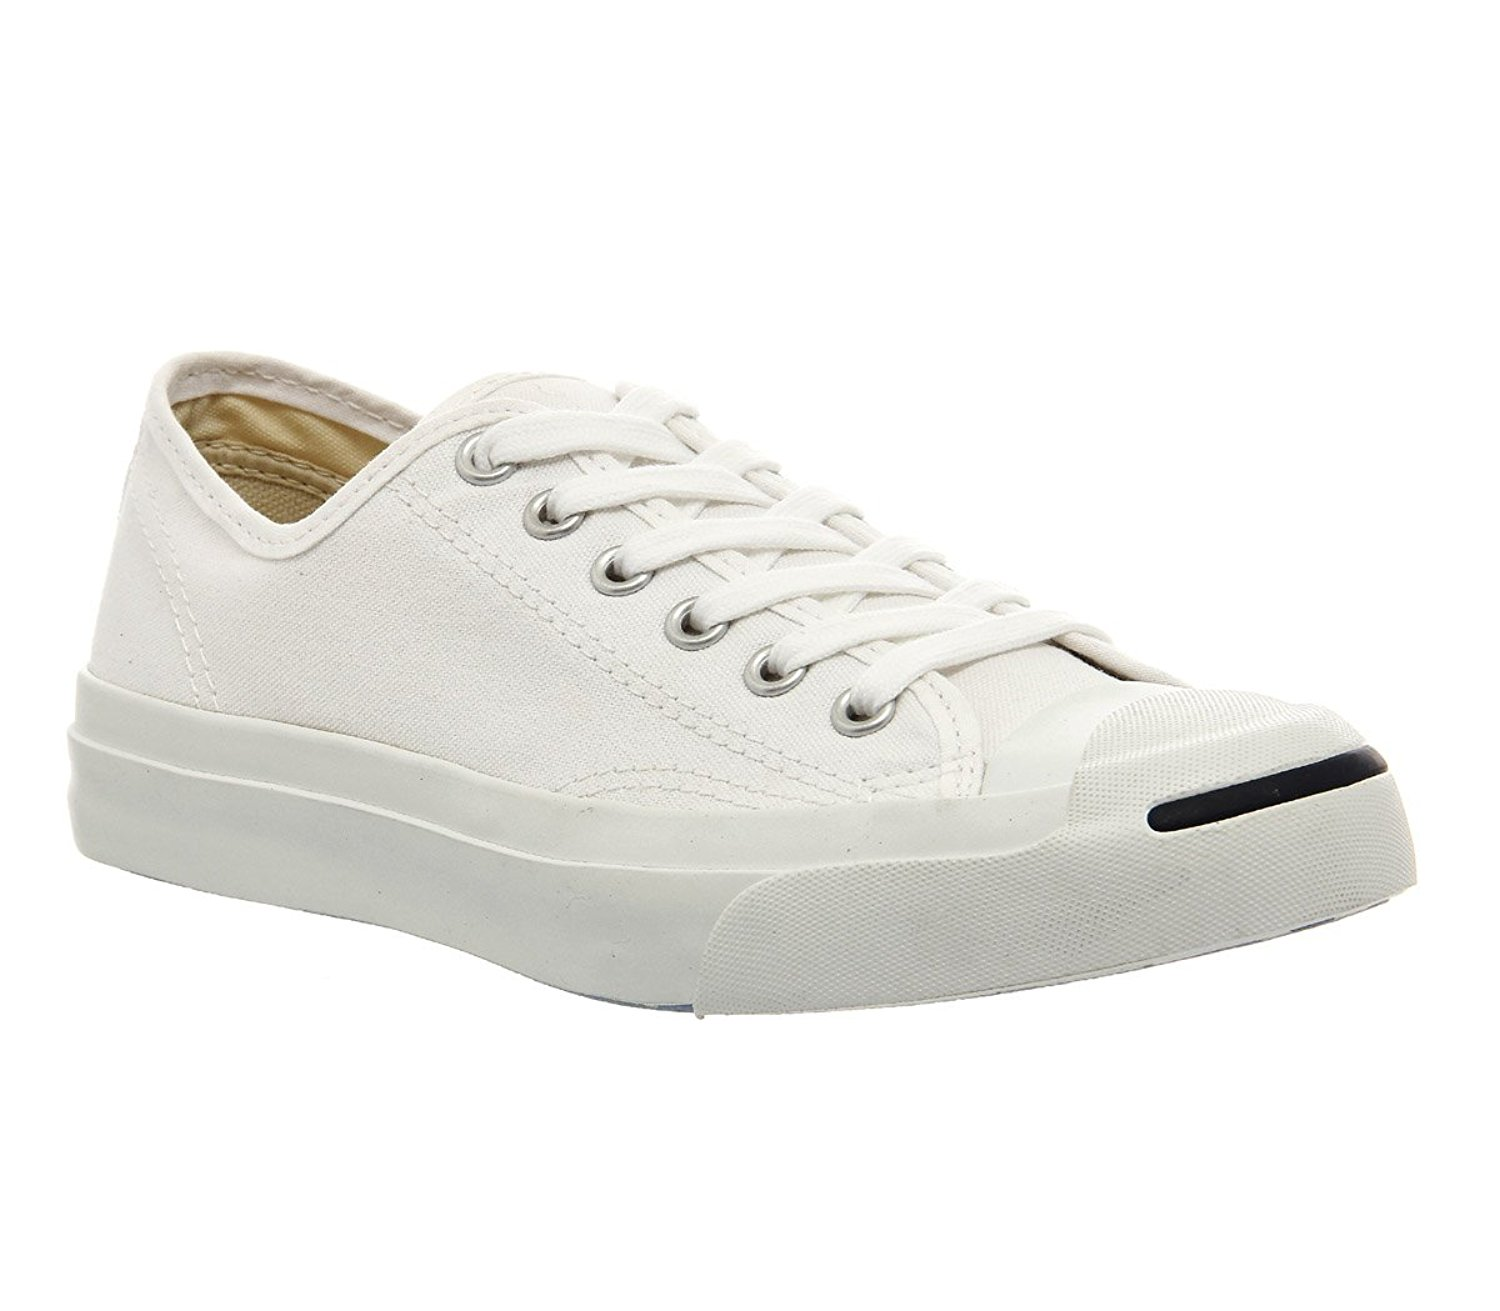 9e76278053f9 Get Quotations · Converse Women s Jack Purcell Cp Canvas Low Top